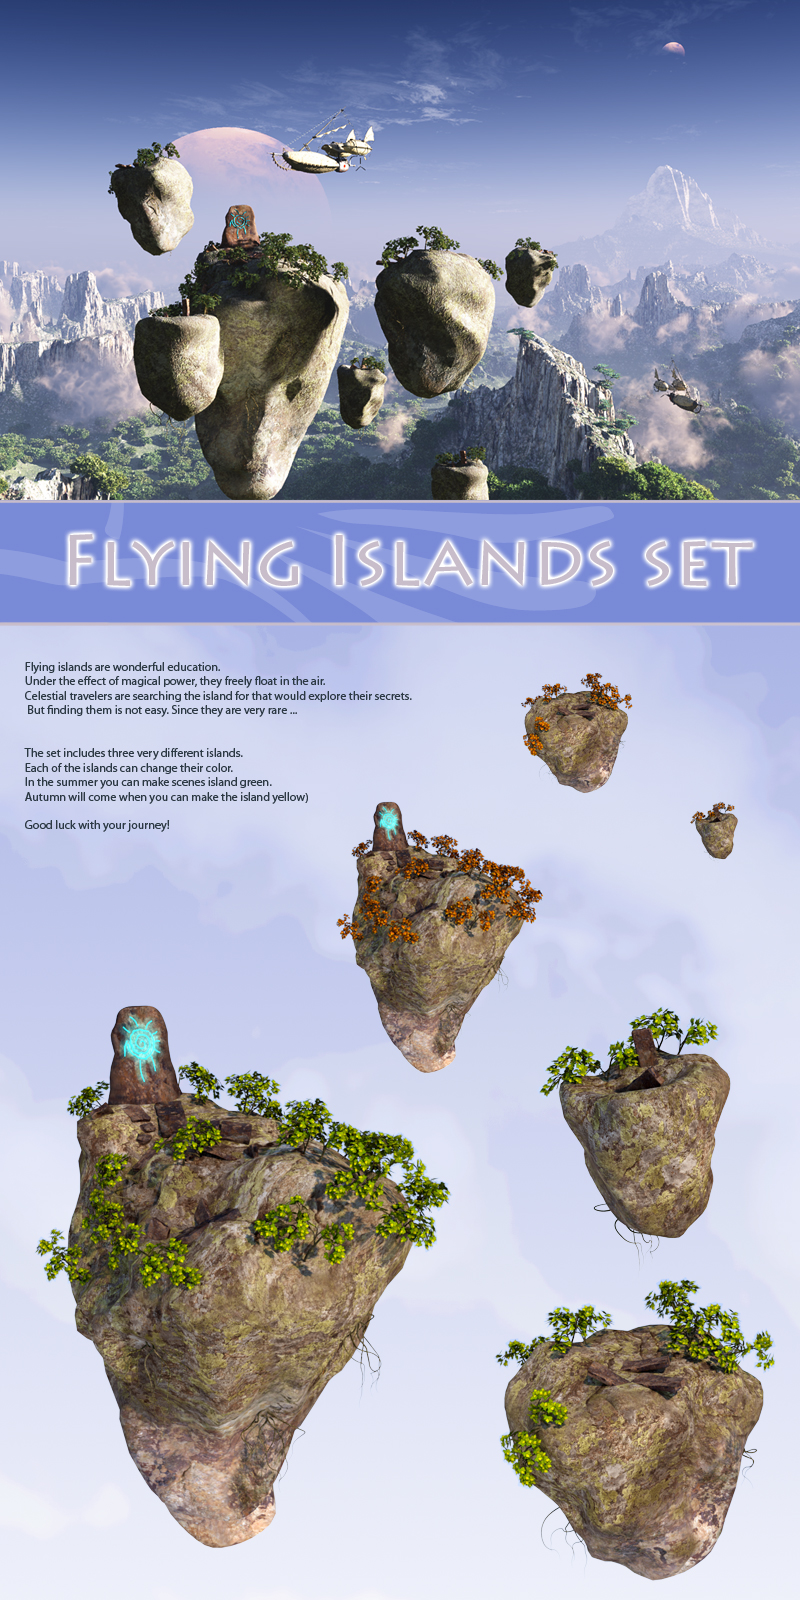 Flying Islands set